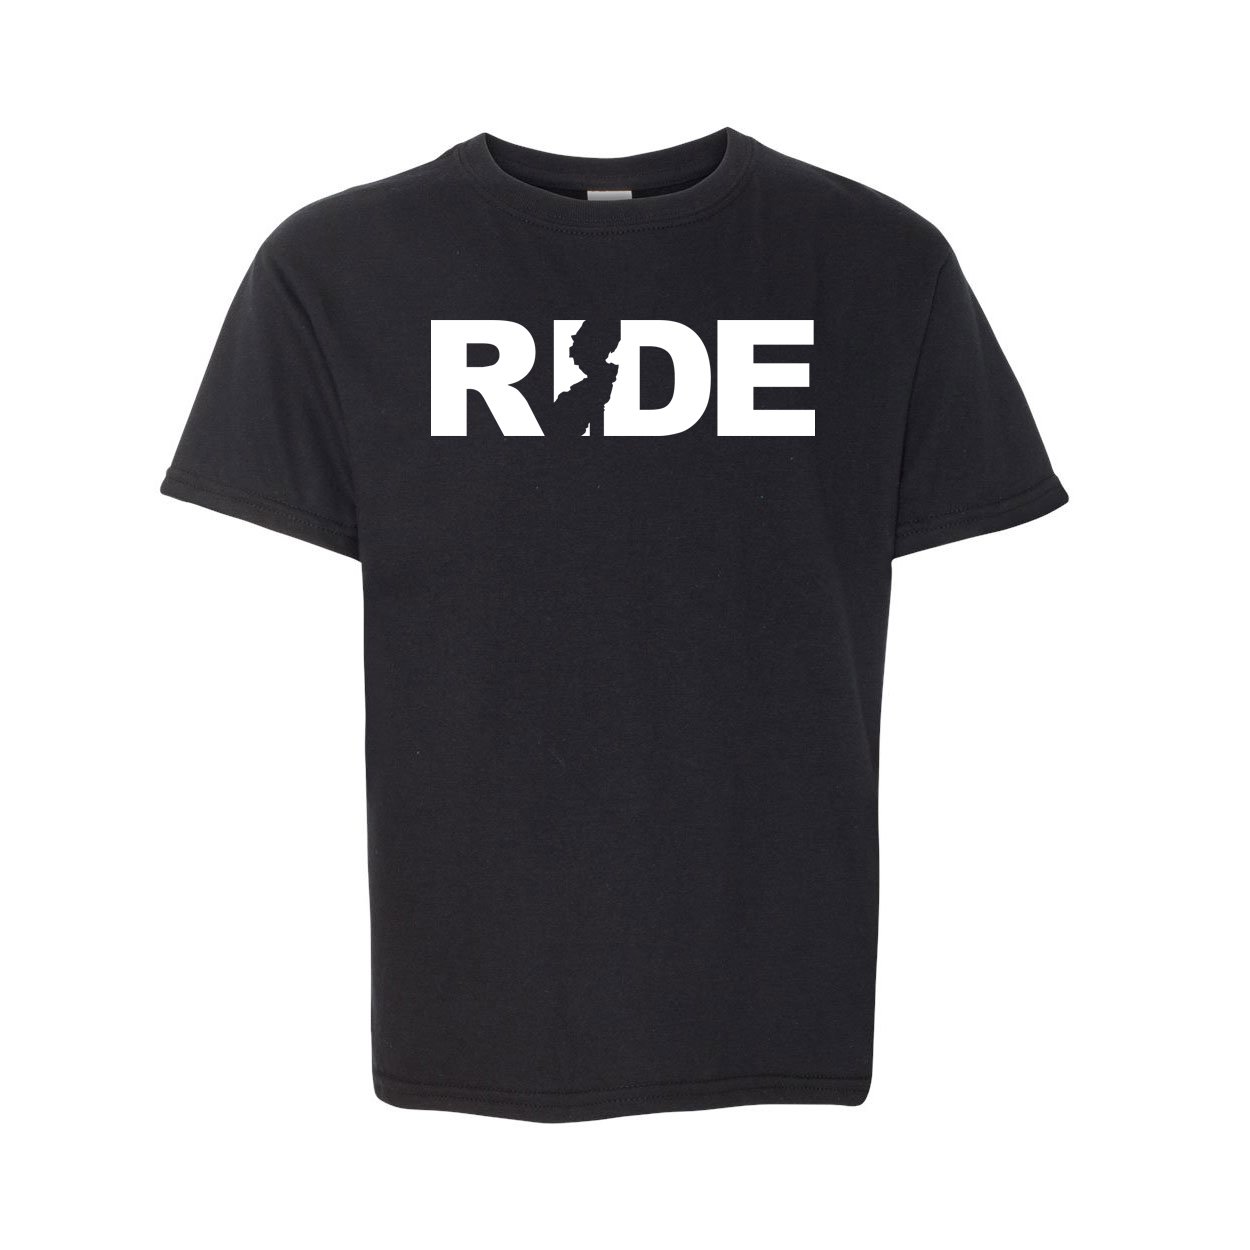 Ride New Jersey Classic Youth T-Shirt Black (White Logo)